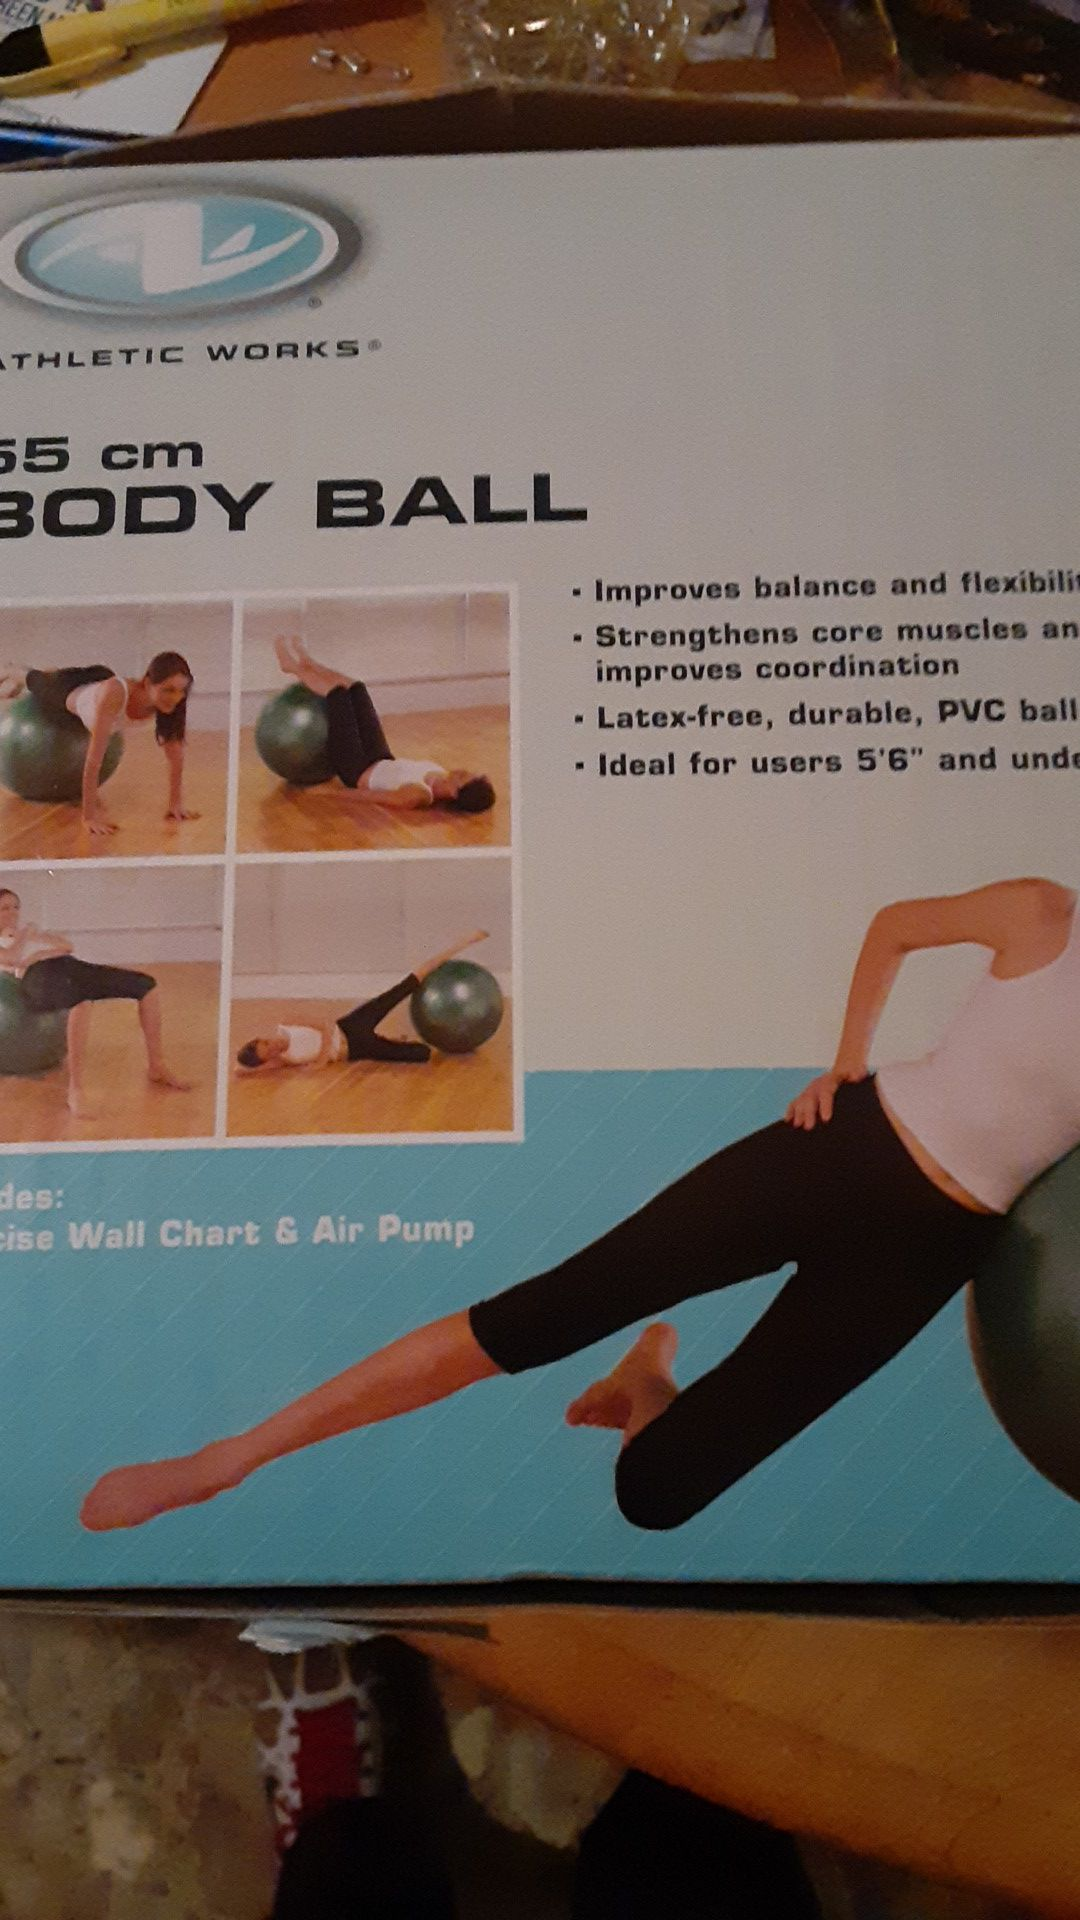 Athletic works body ball for exercise